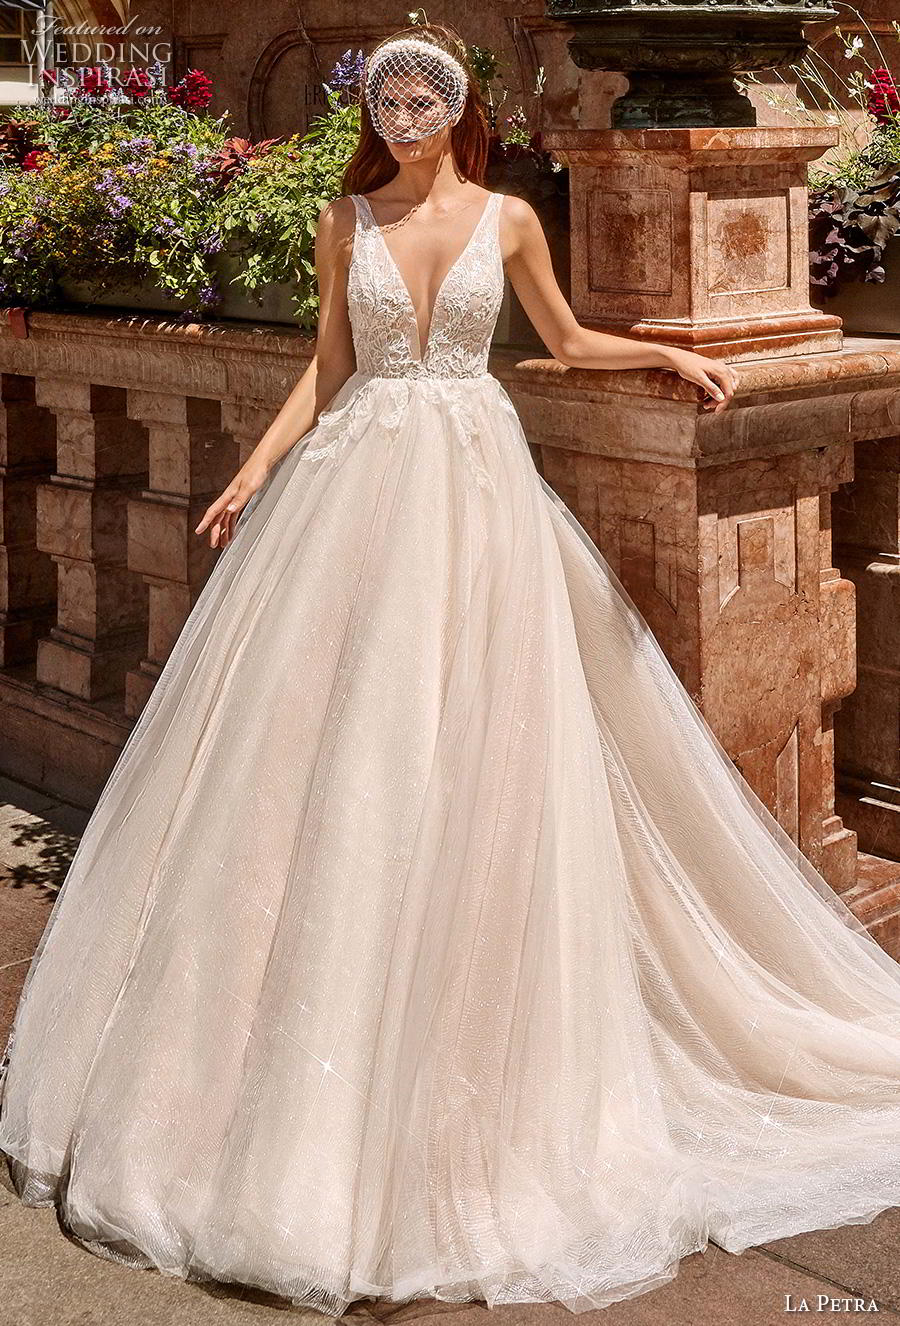 la petra 2020 bridal sleeveless with strap deep v neck heavily embellished bodice romantic ivory a  line wedding dress v back chapel train (12) mv